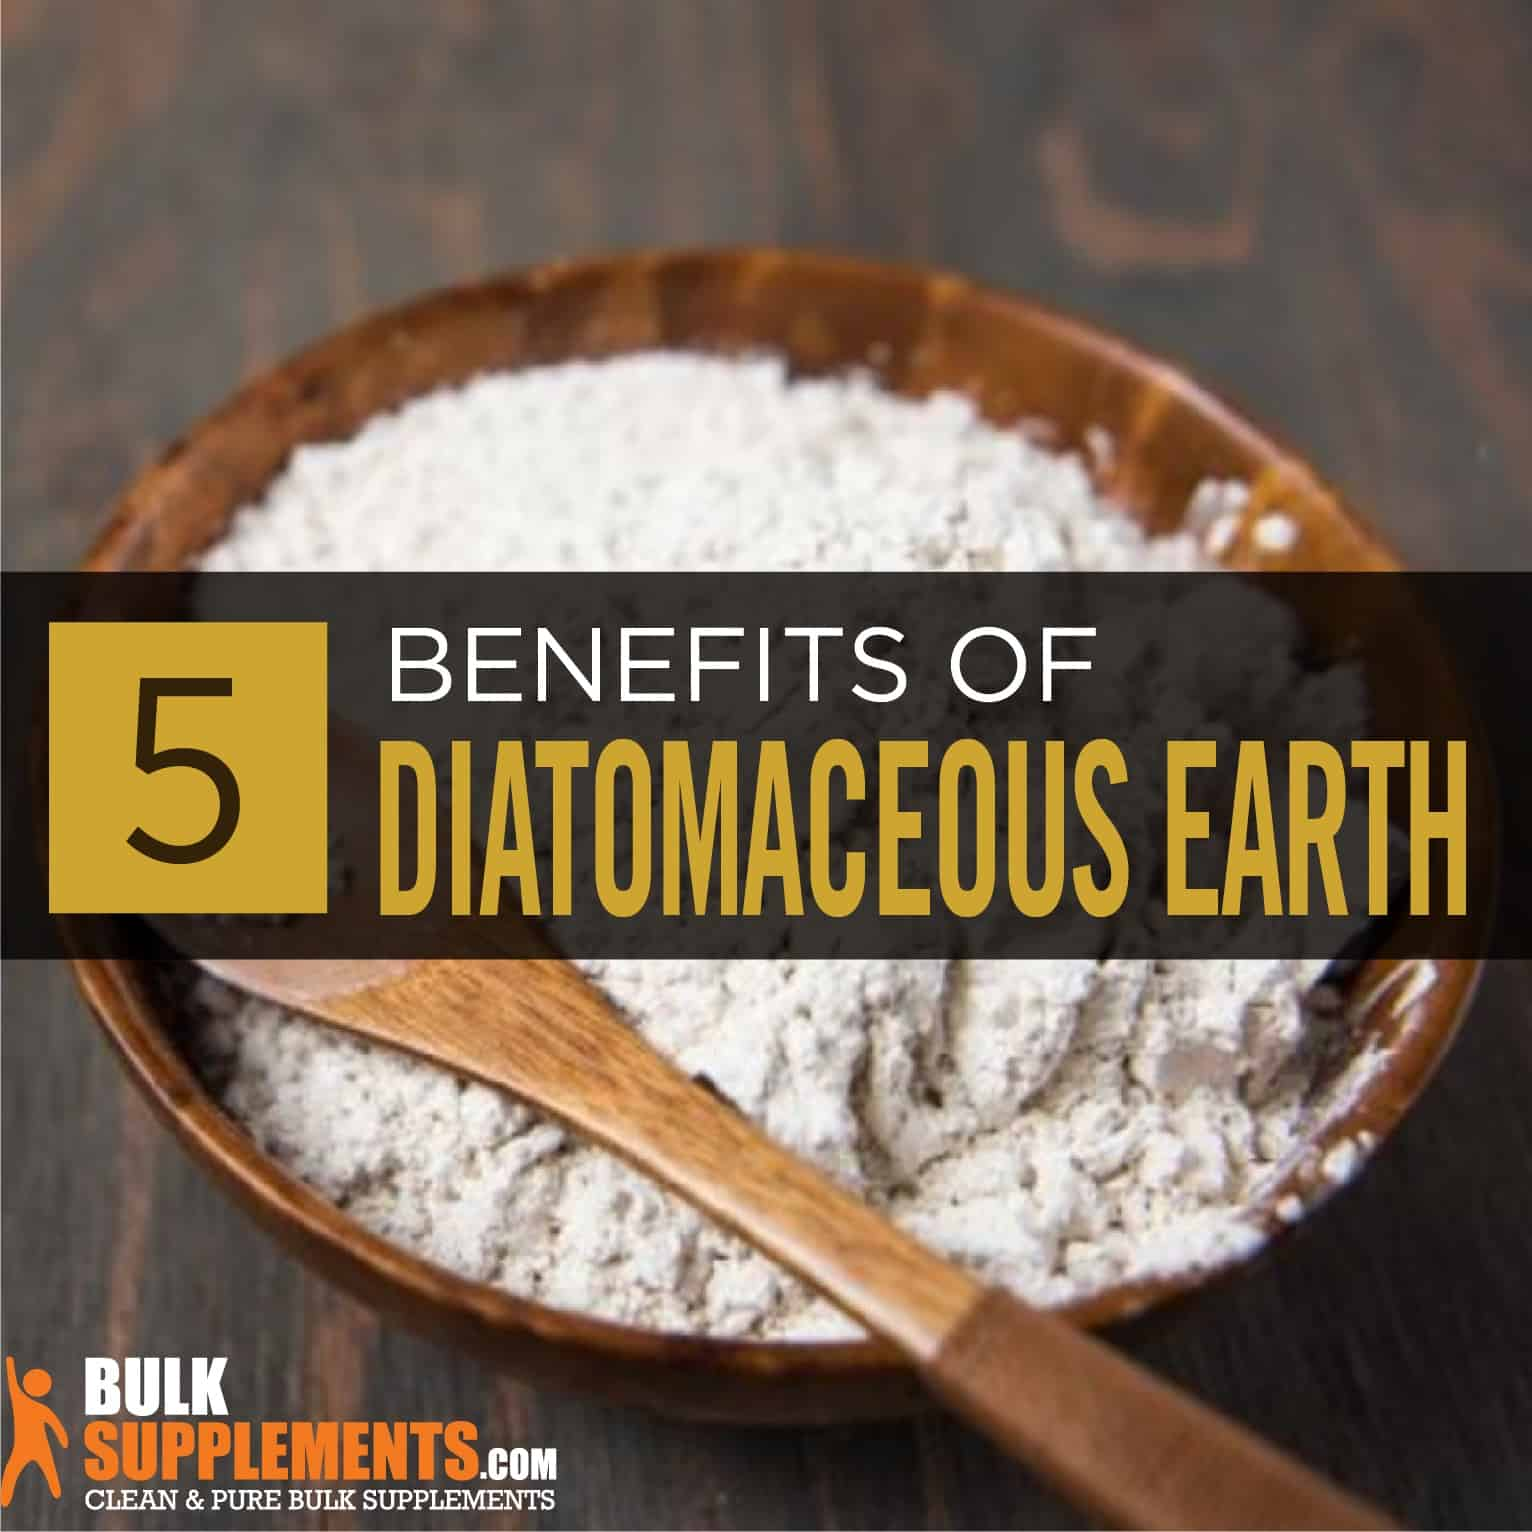 Diatomaceous Earth Benefits Side Effects Dosage